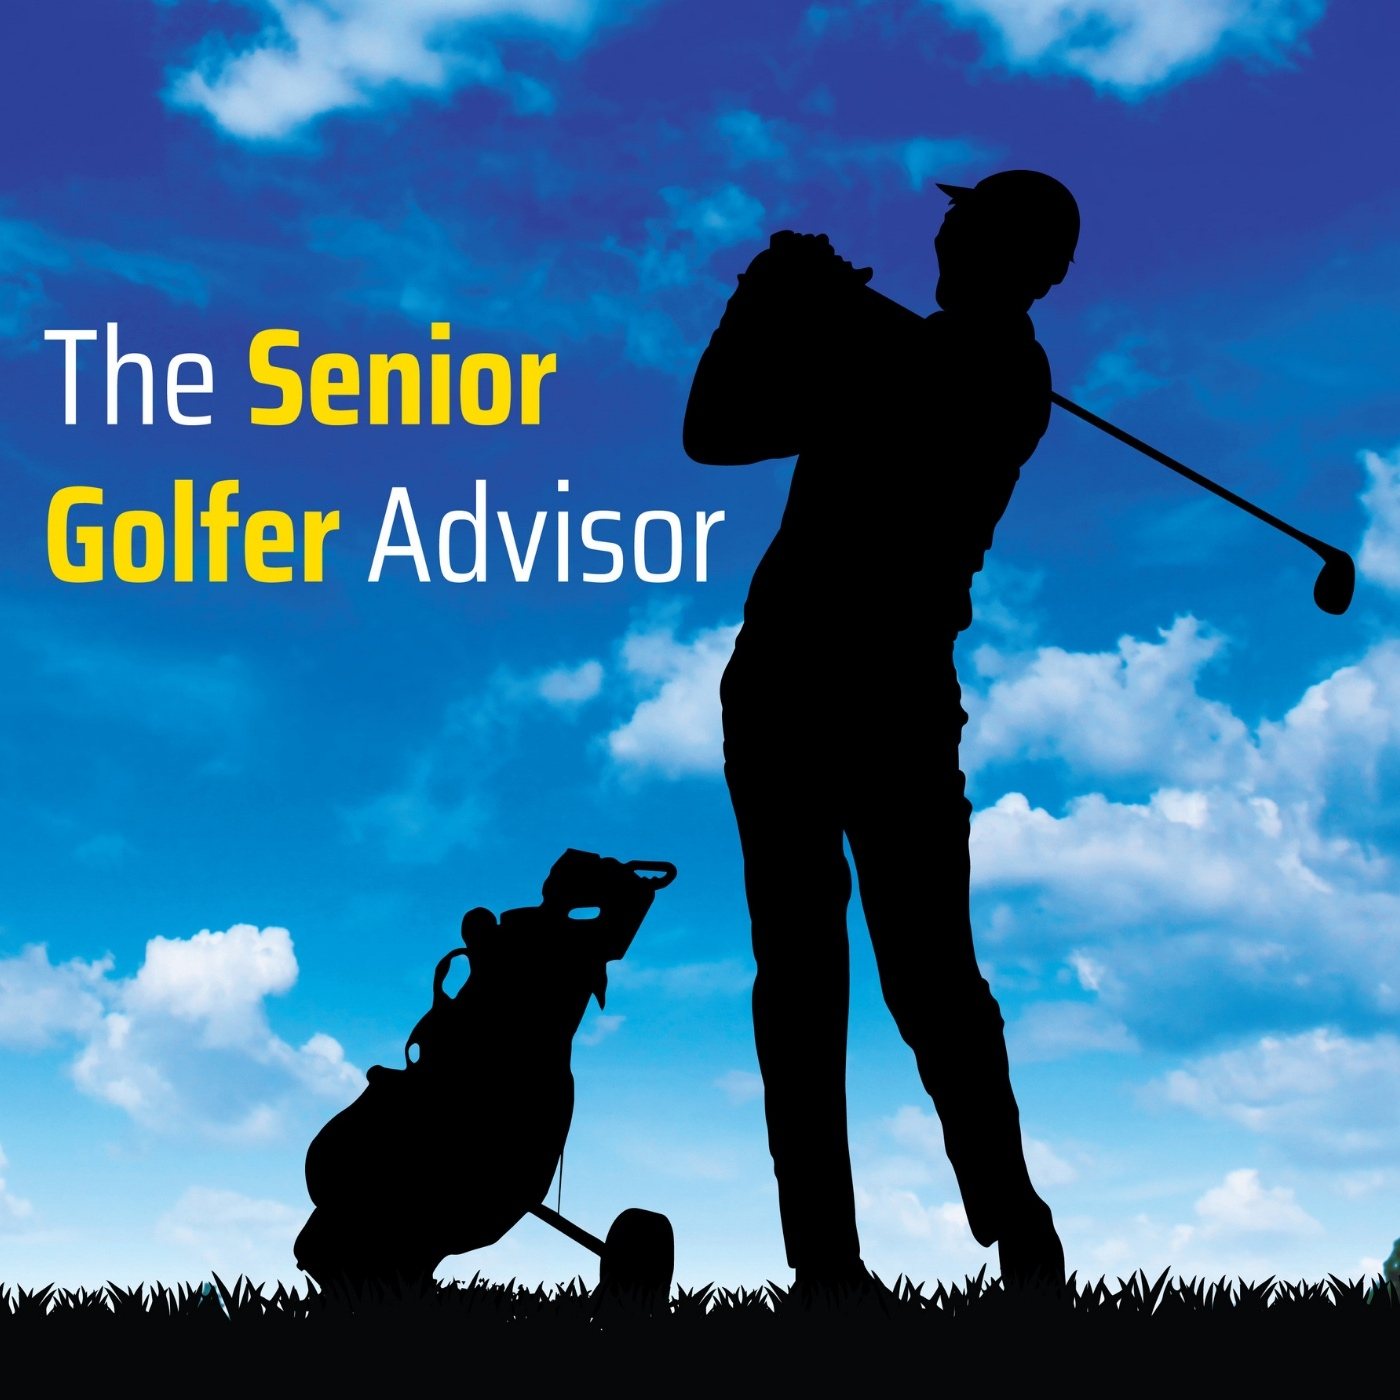 Yoga Golf Fitness Greater Strength Power And Distance Featuring Katherine Roberts The Senior Golfer Advisor